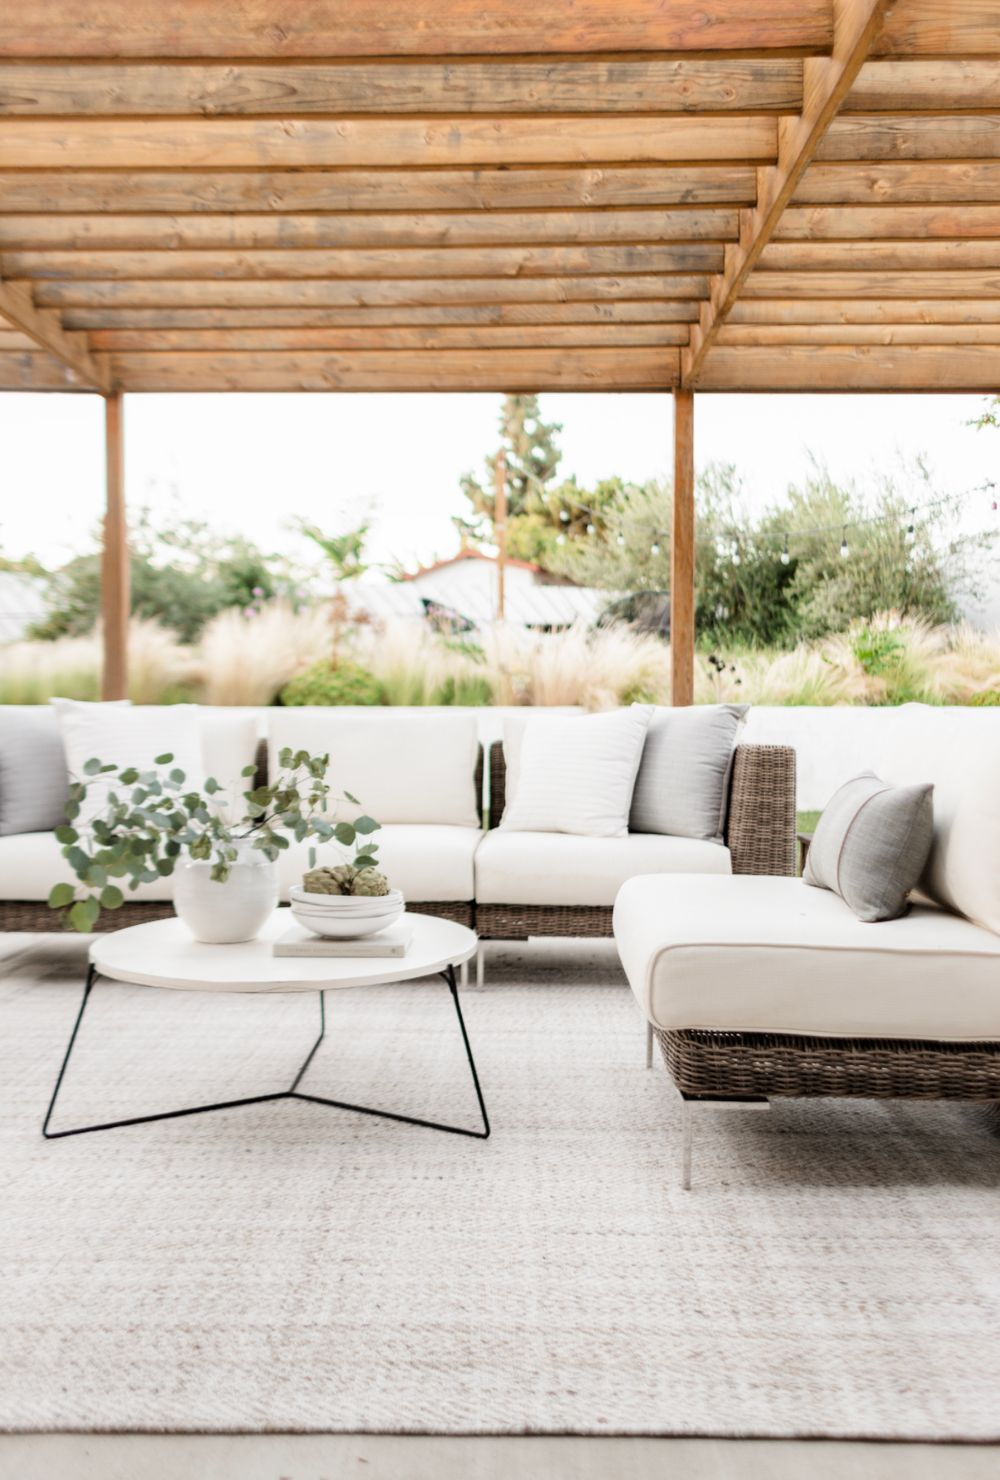 Cream color performance fabric on outdoor furniture